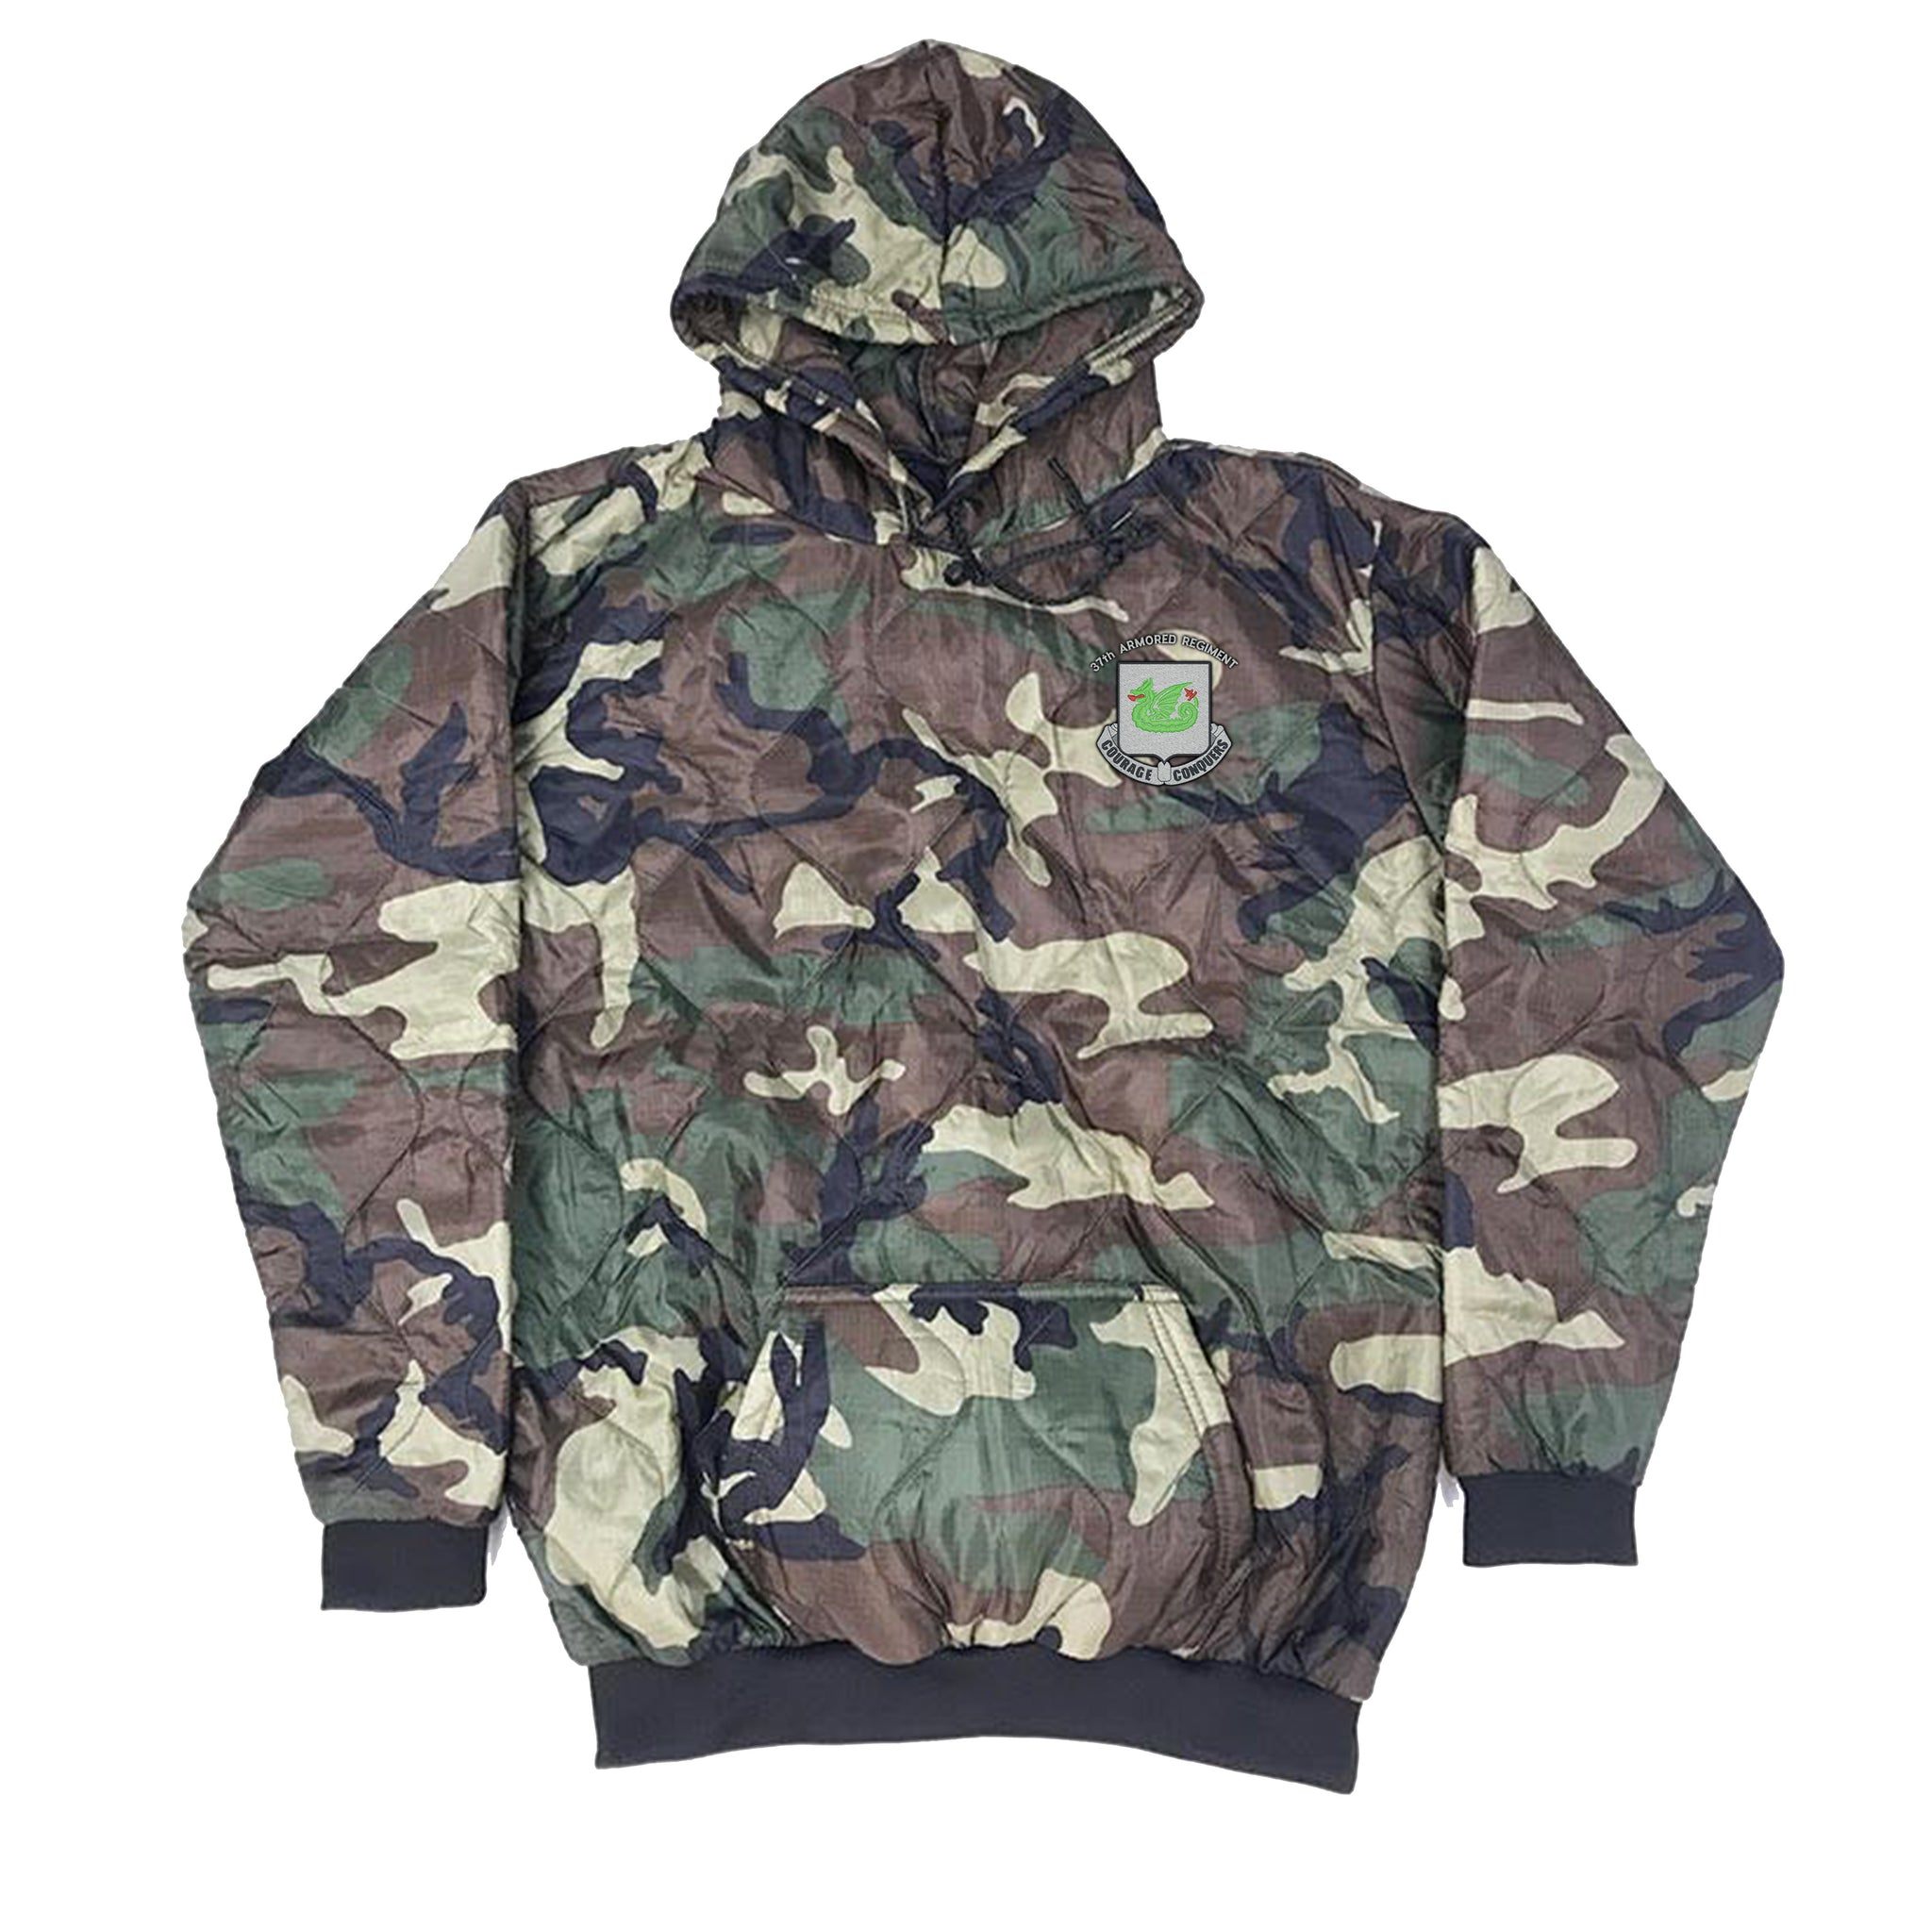 37th Armored Regiment Woobie Hoodie